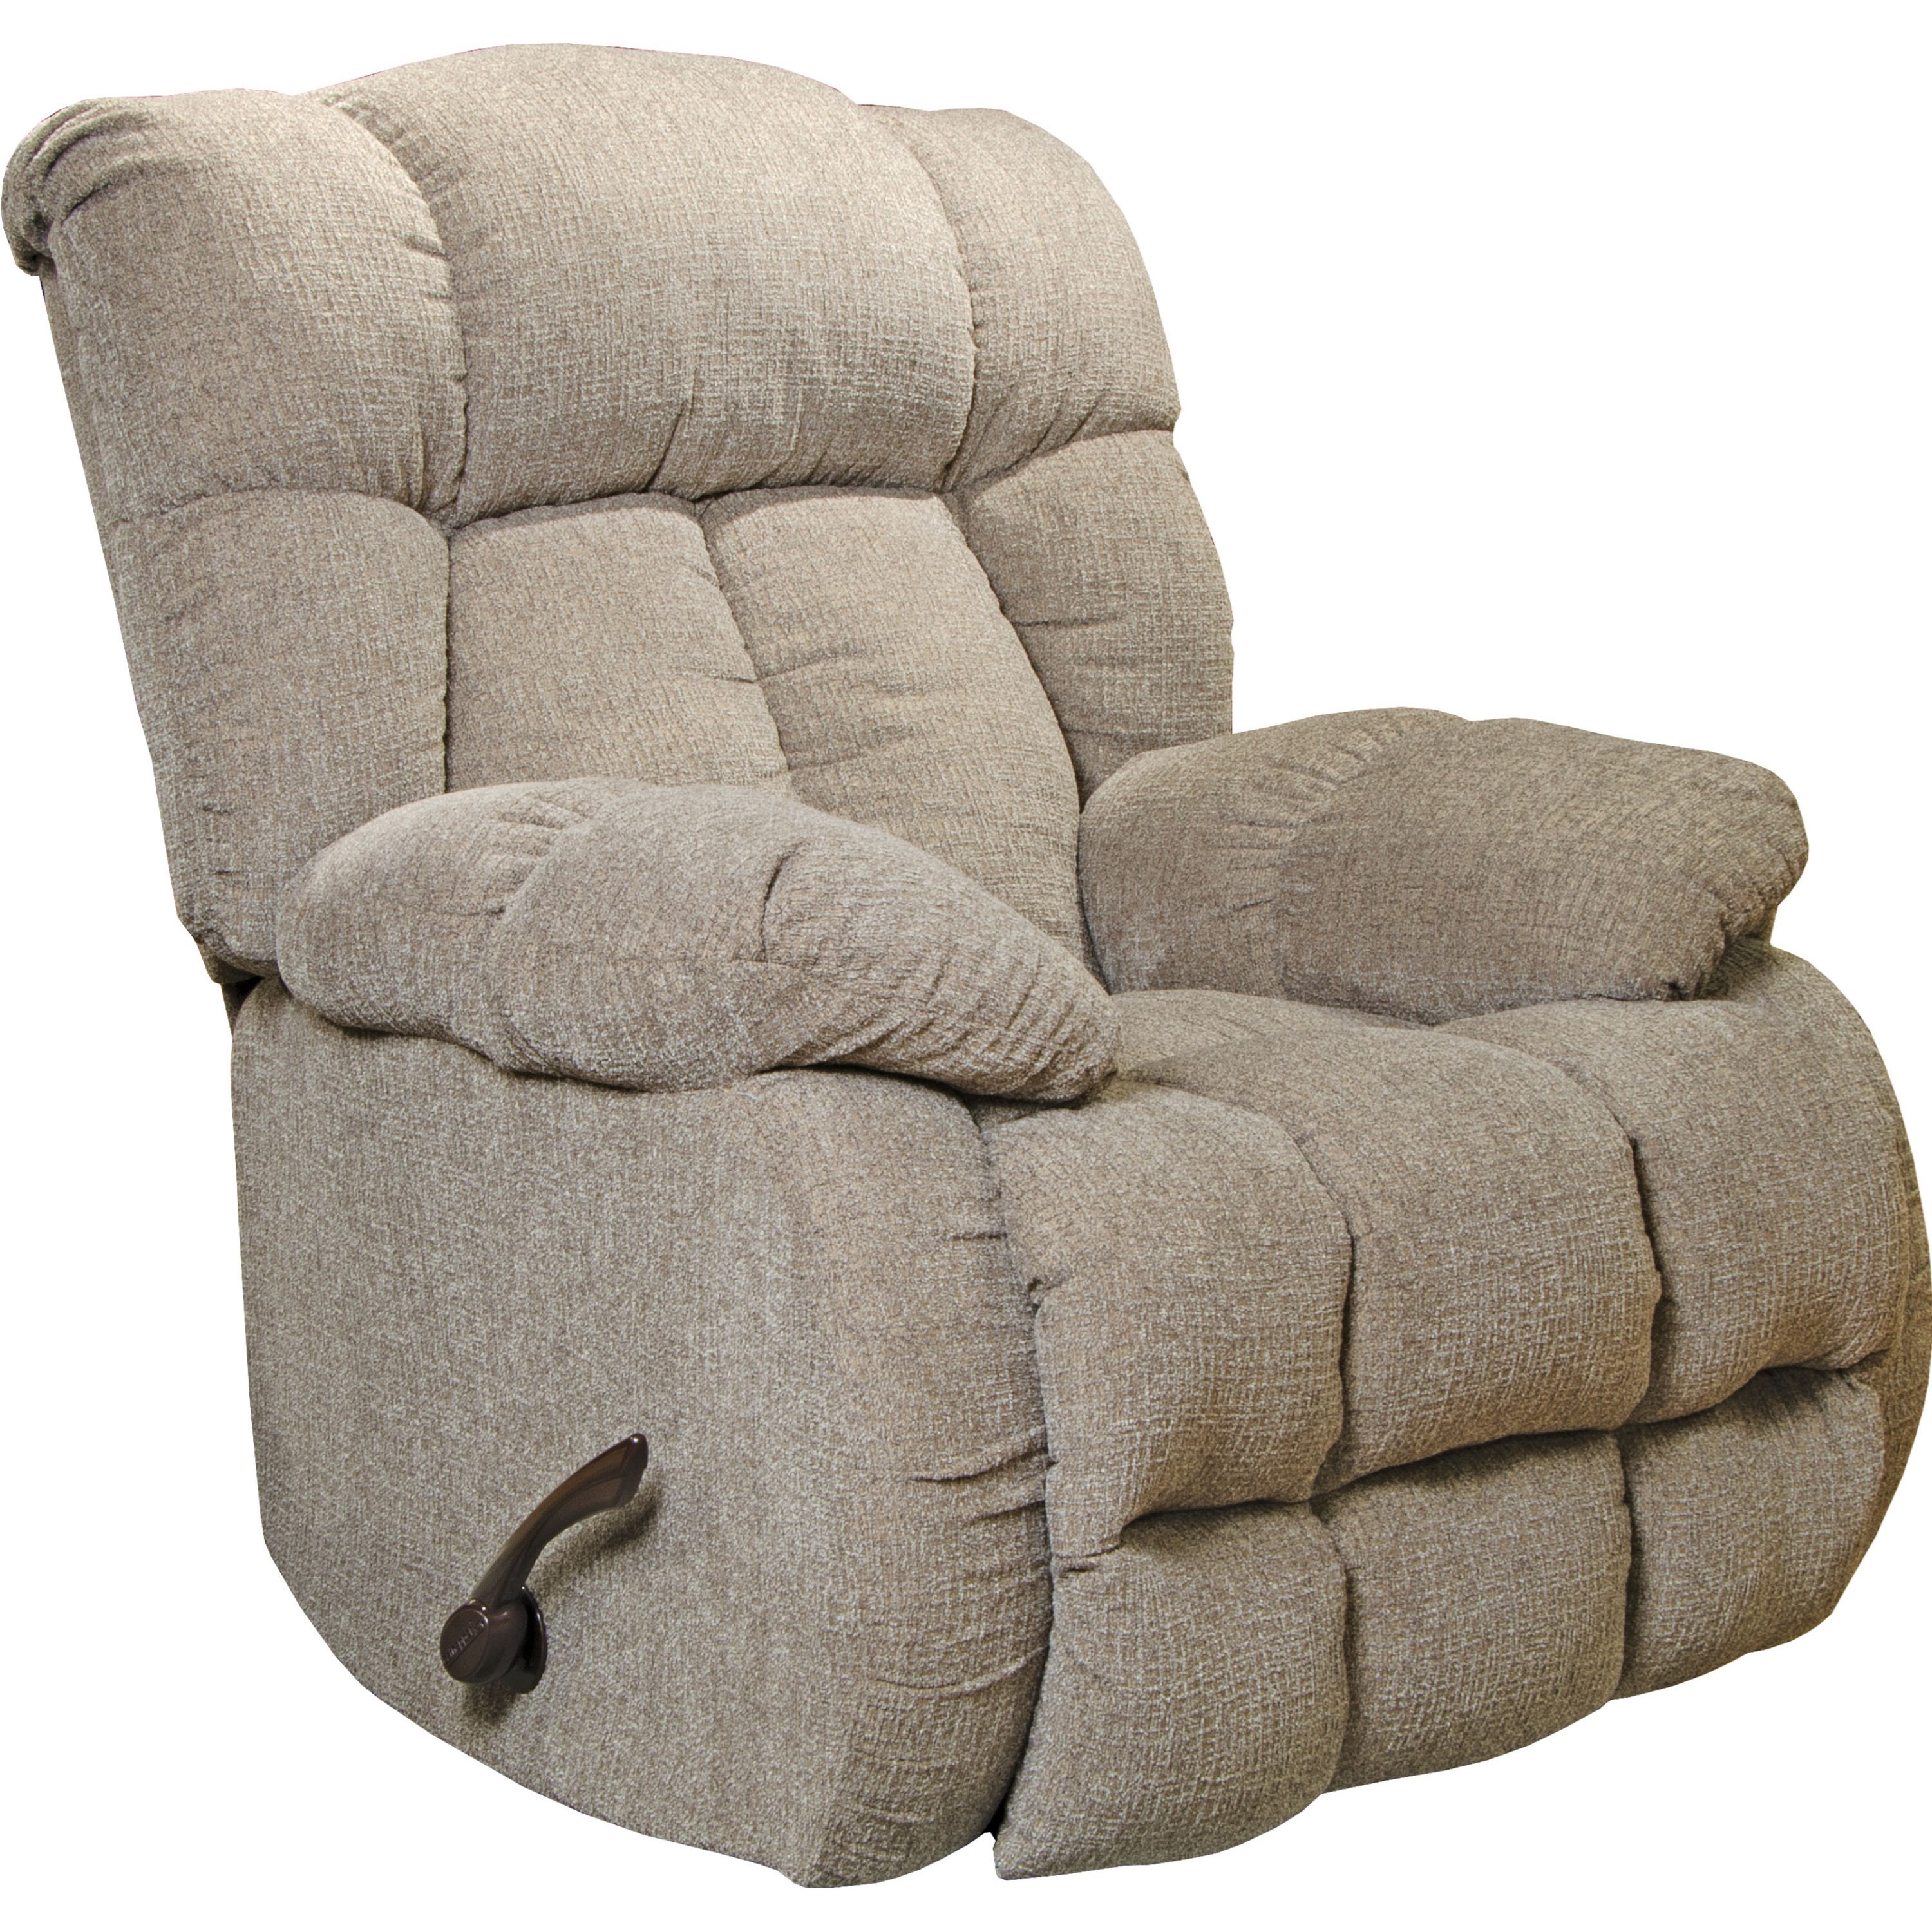 Catnapper Motion Chairs And Recliners Brody Rocker